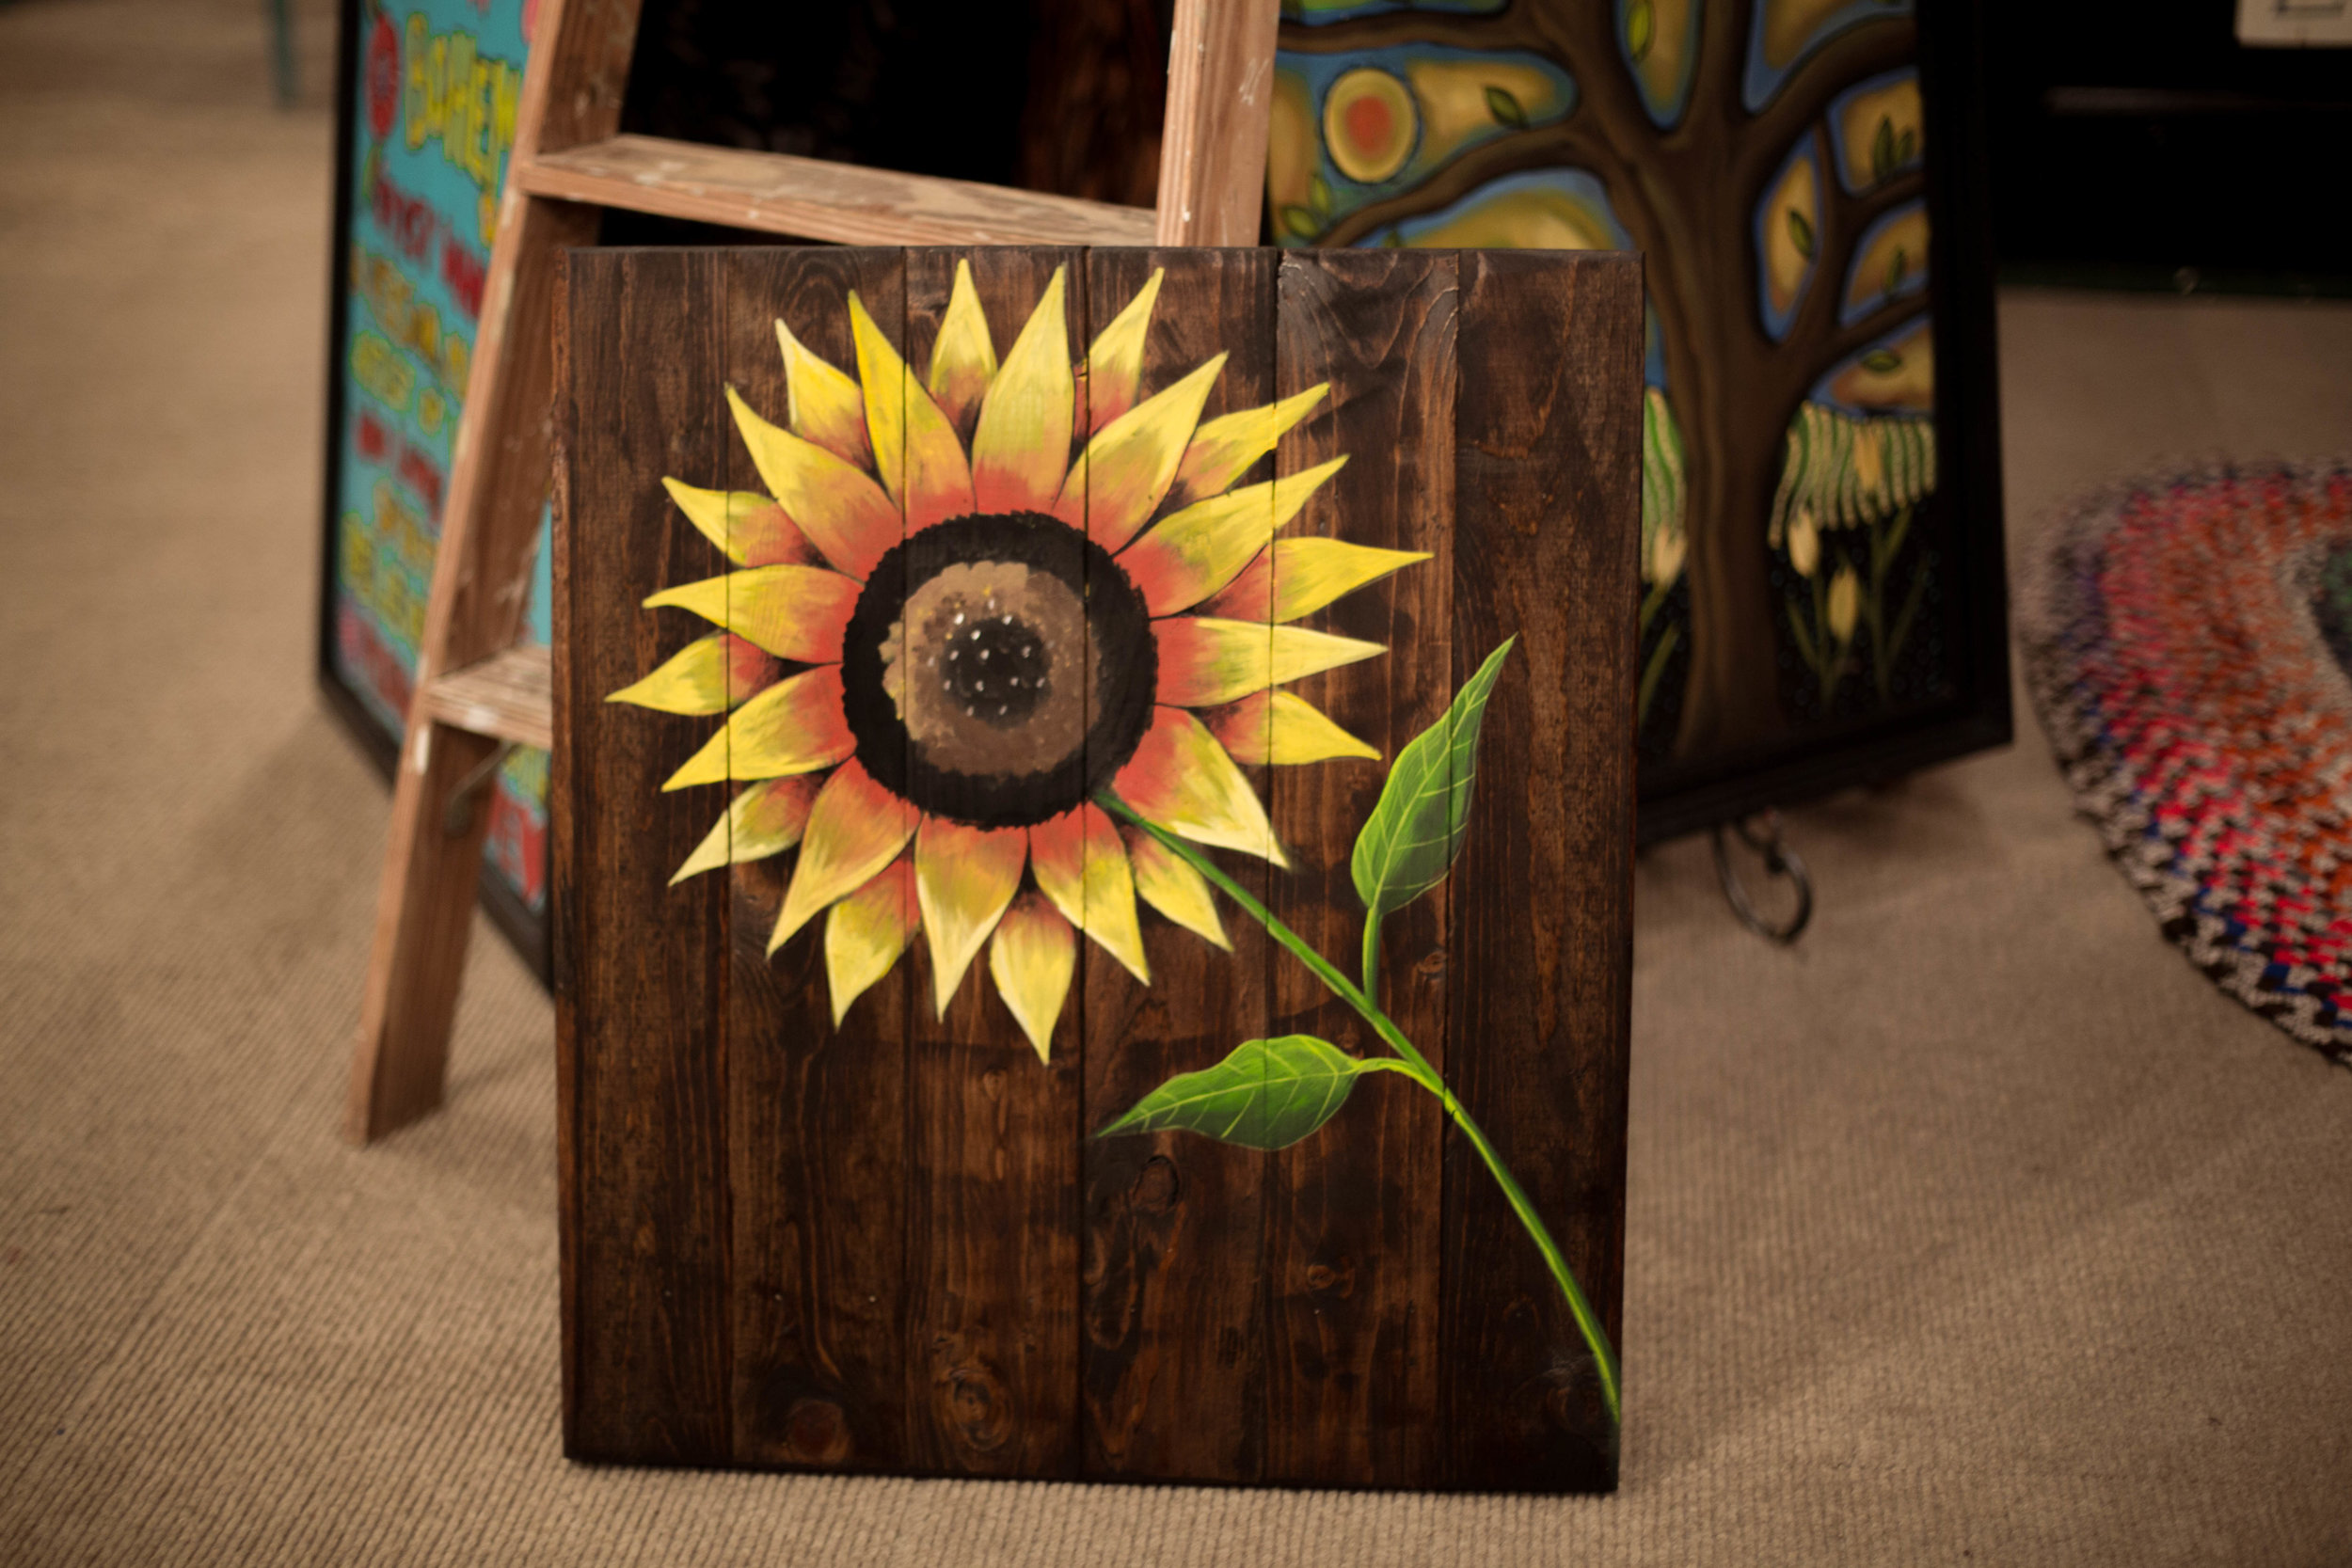 sunflower-6979.jpg